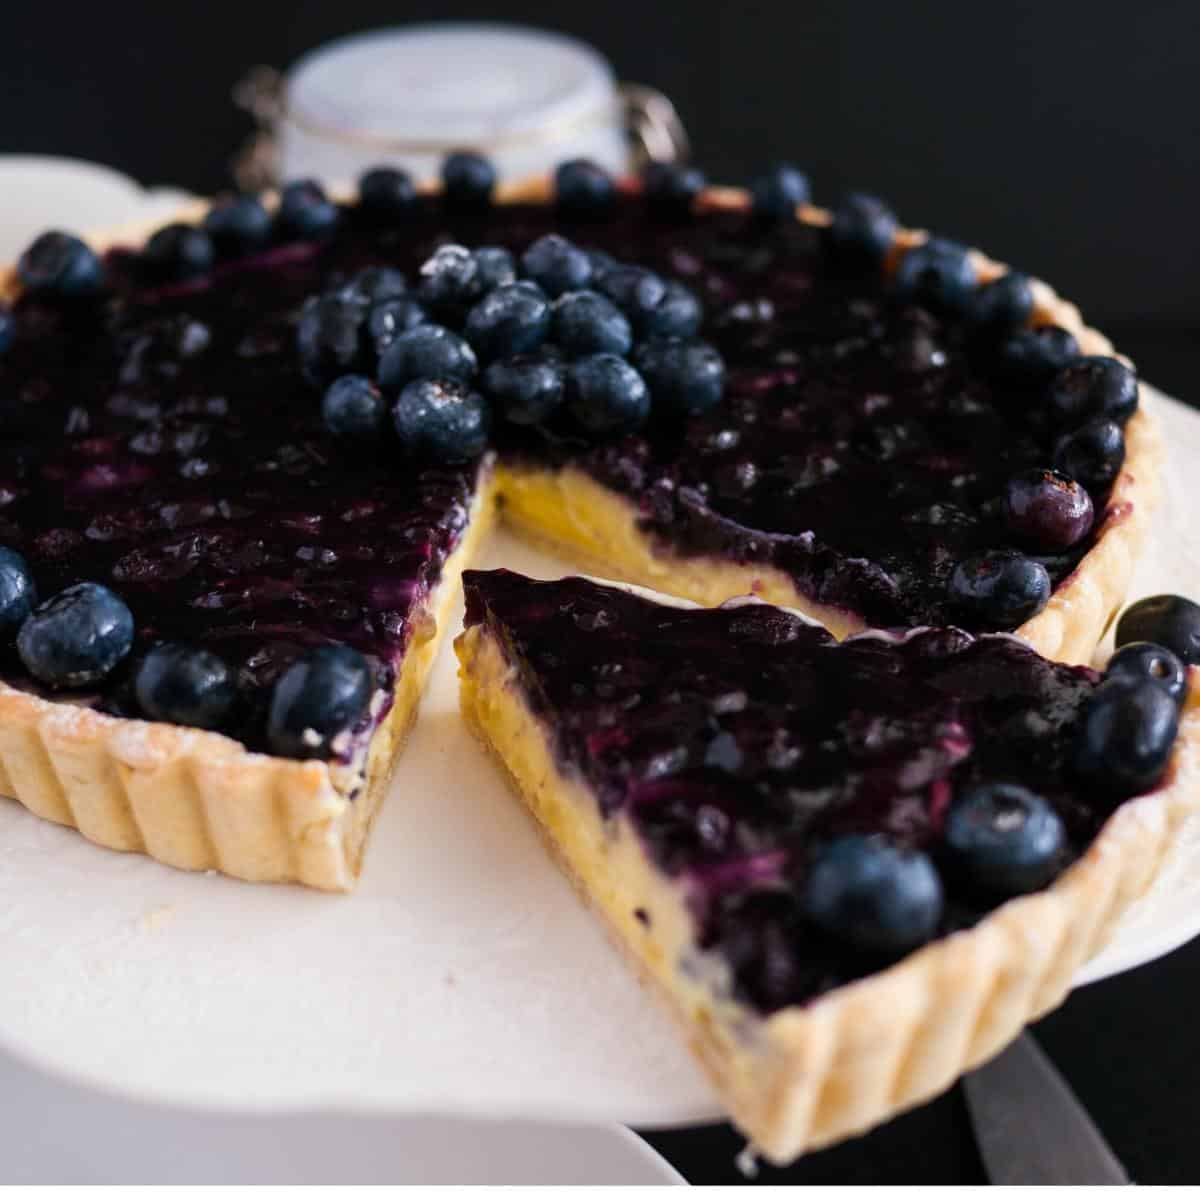 How to make a custard fruit tart with Blueberry filling